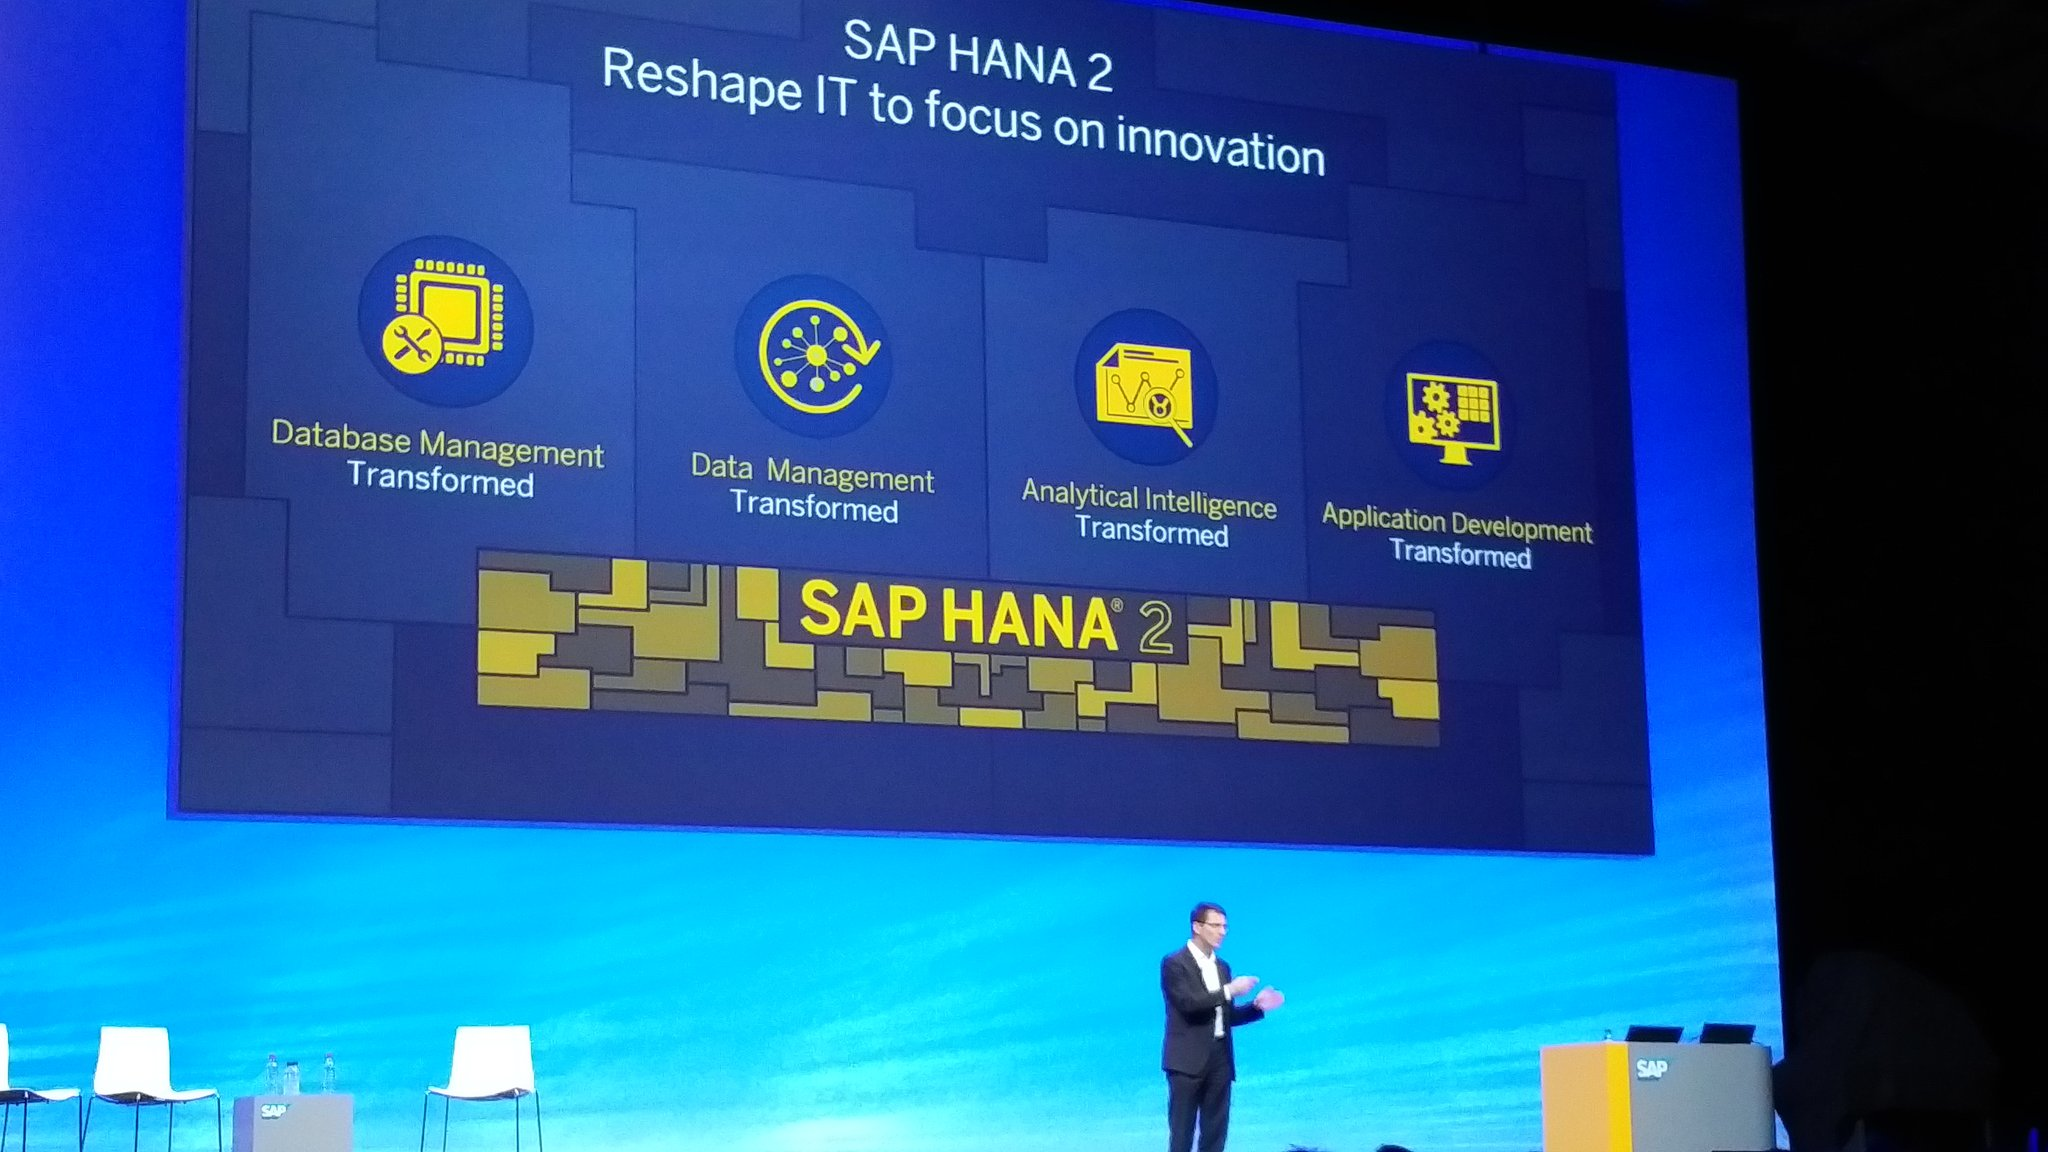 sap teched day keynote images tweets middot holgermu middot storify and leukertb announces sap hana 2 sapteched